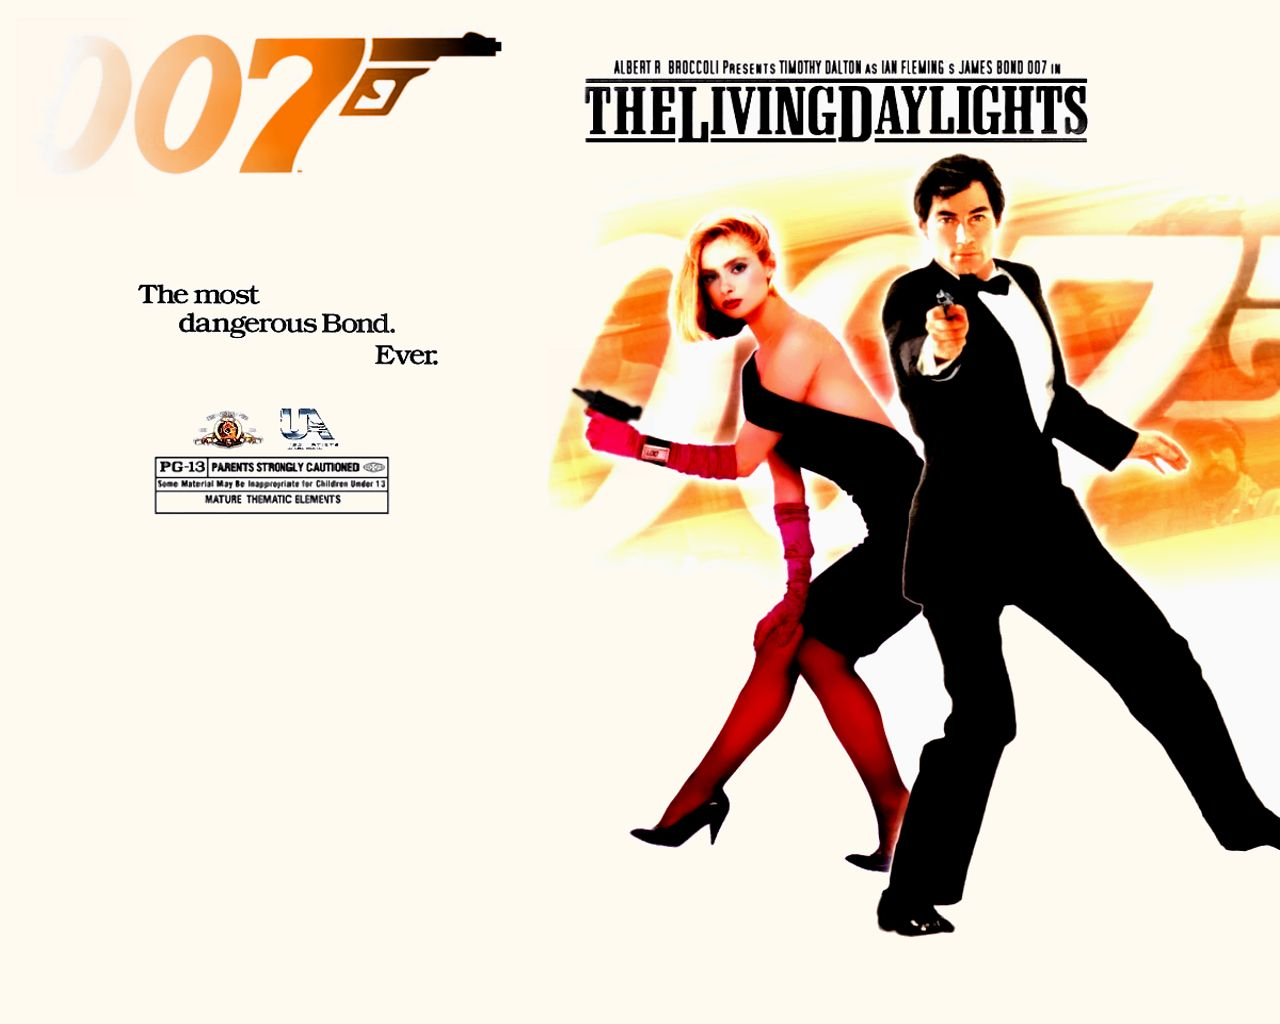 The Living Daylights (1987) fi